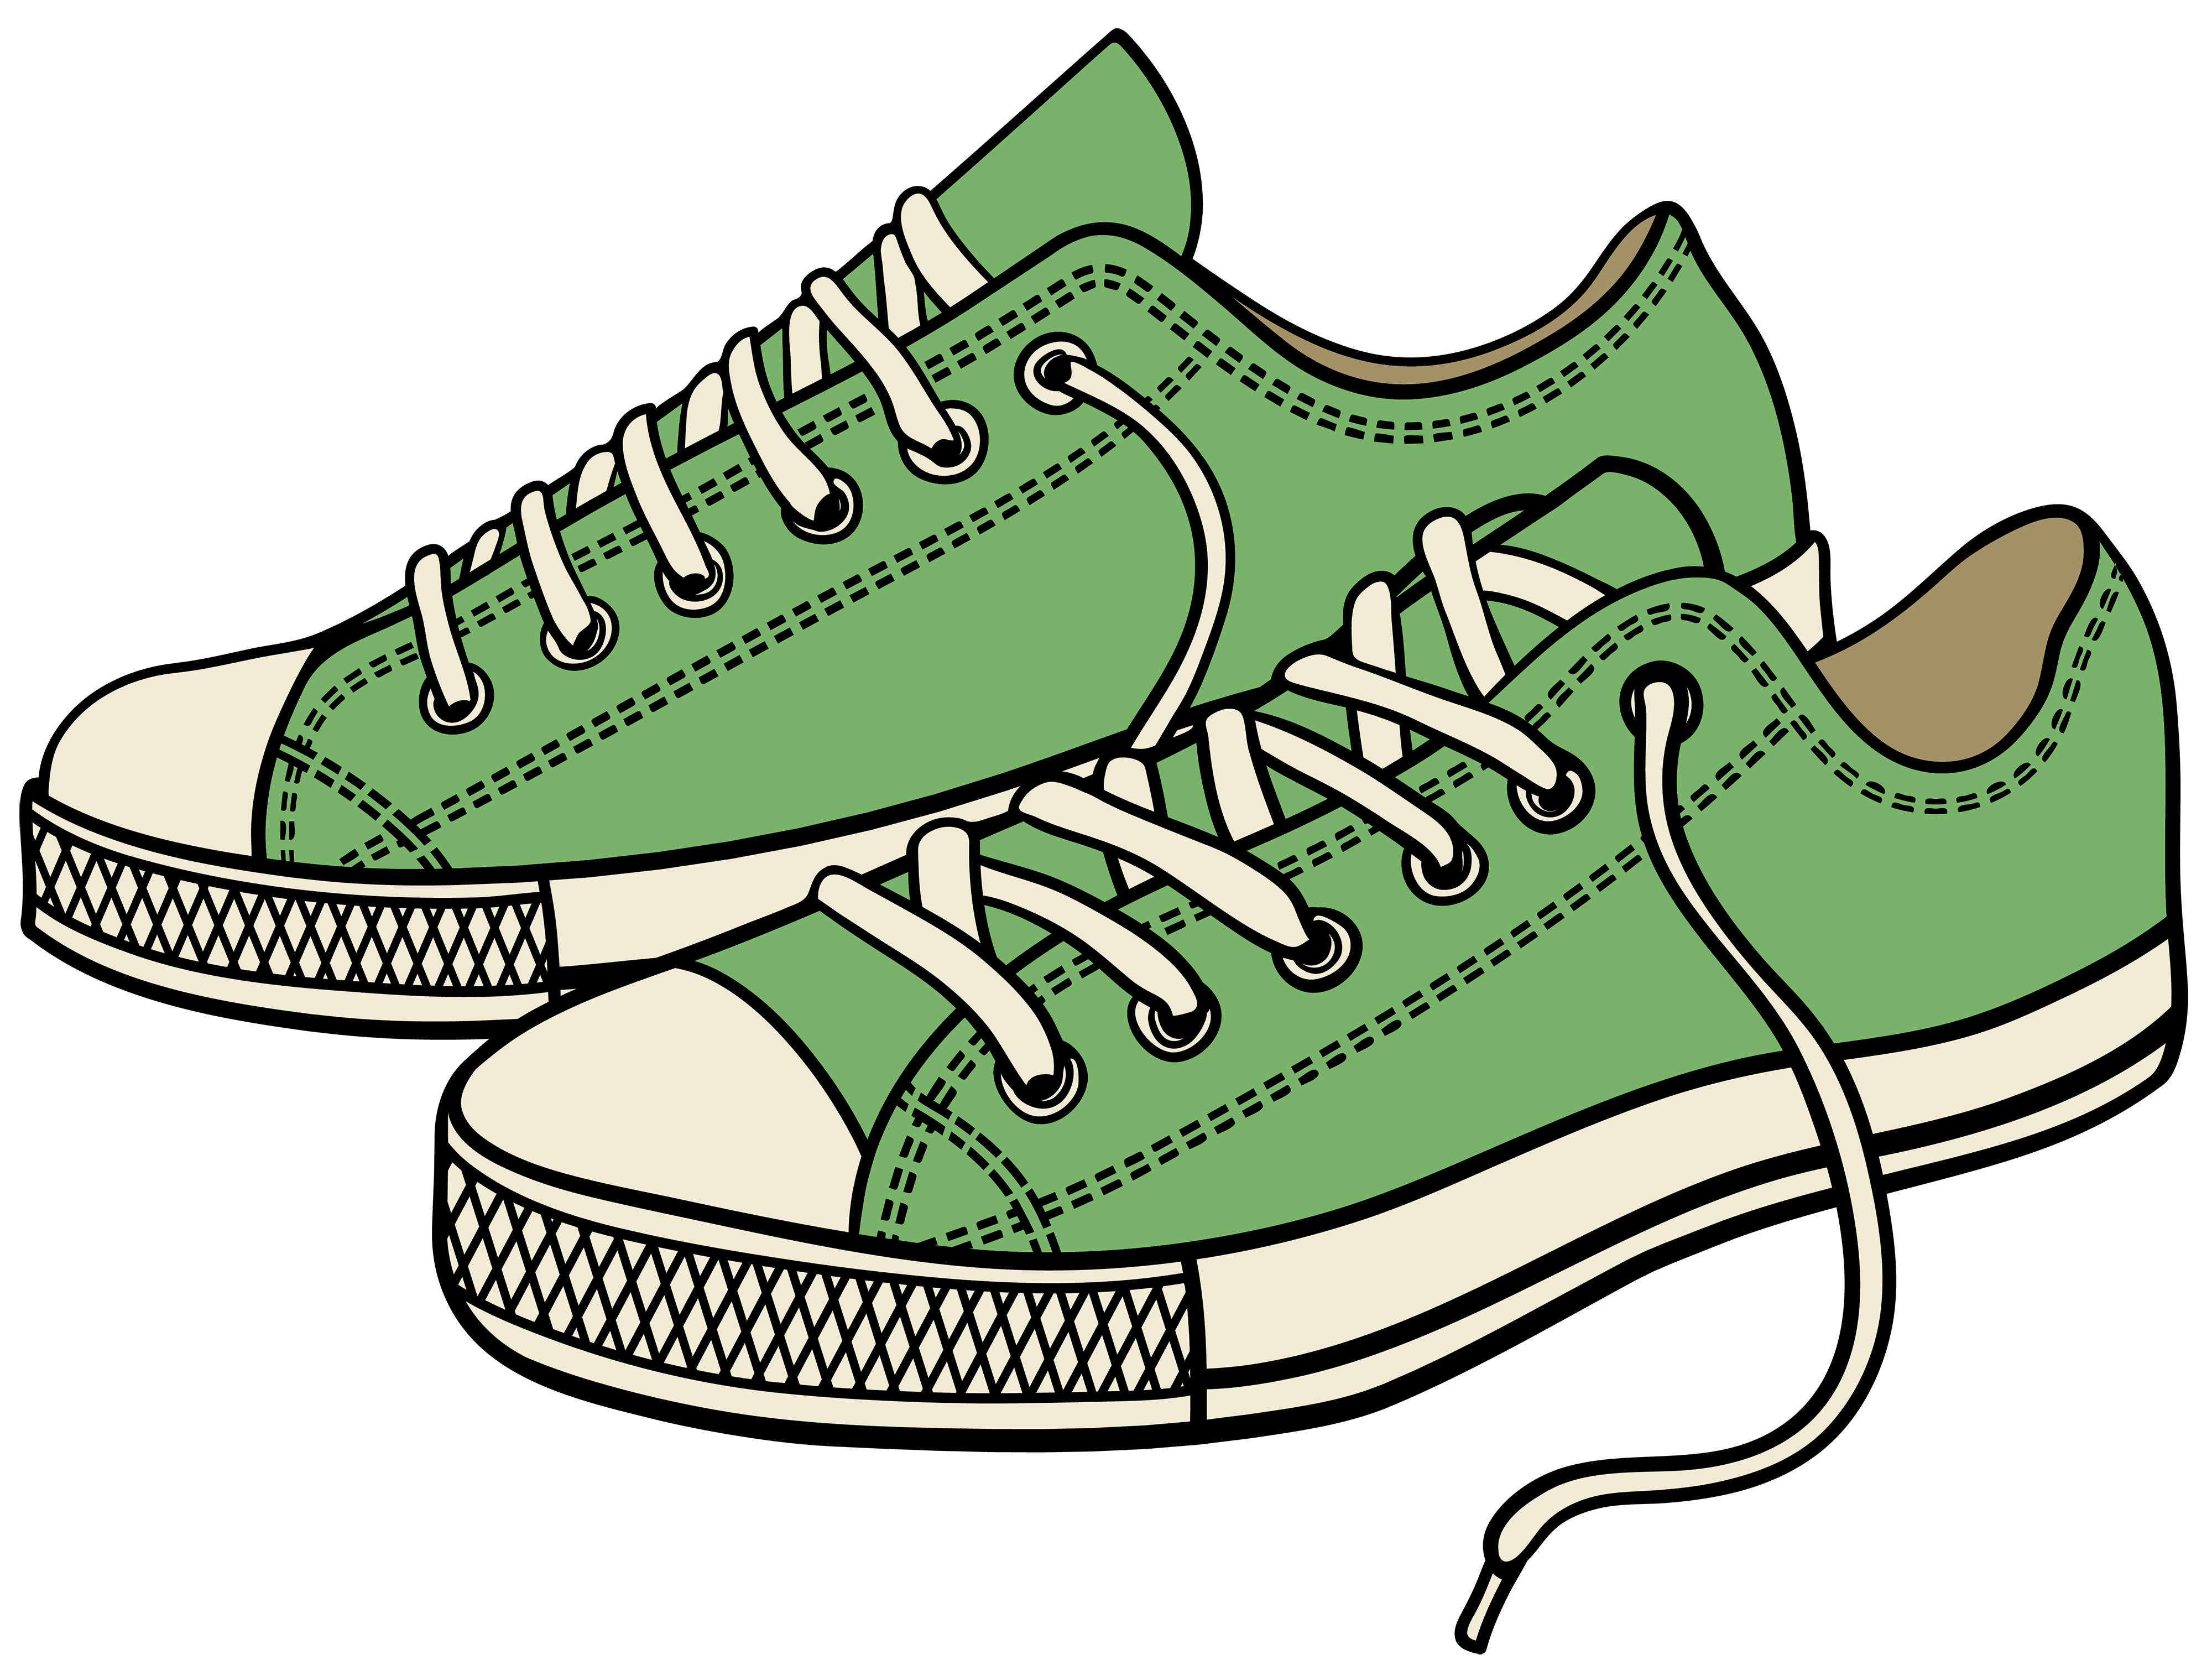 Sneakers clipart #4, Download drawings